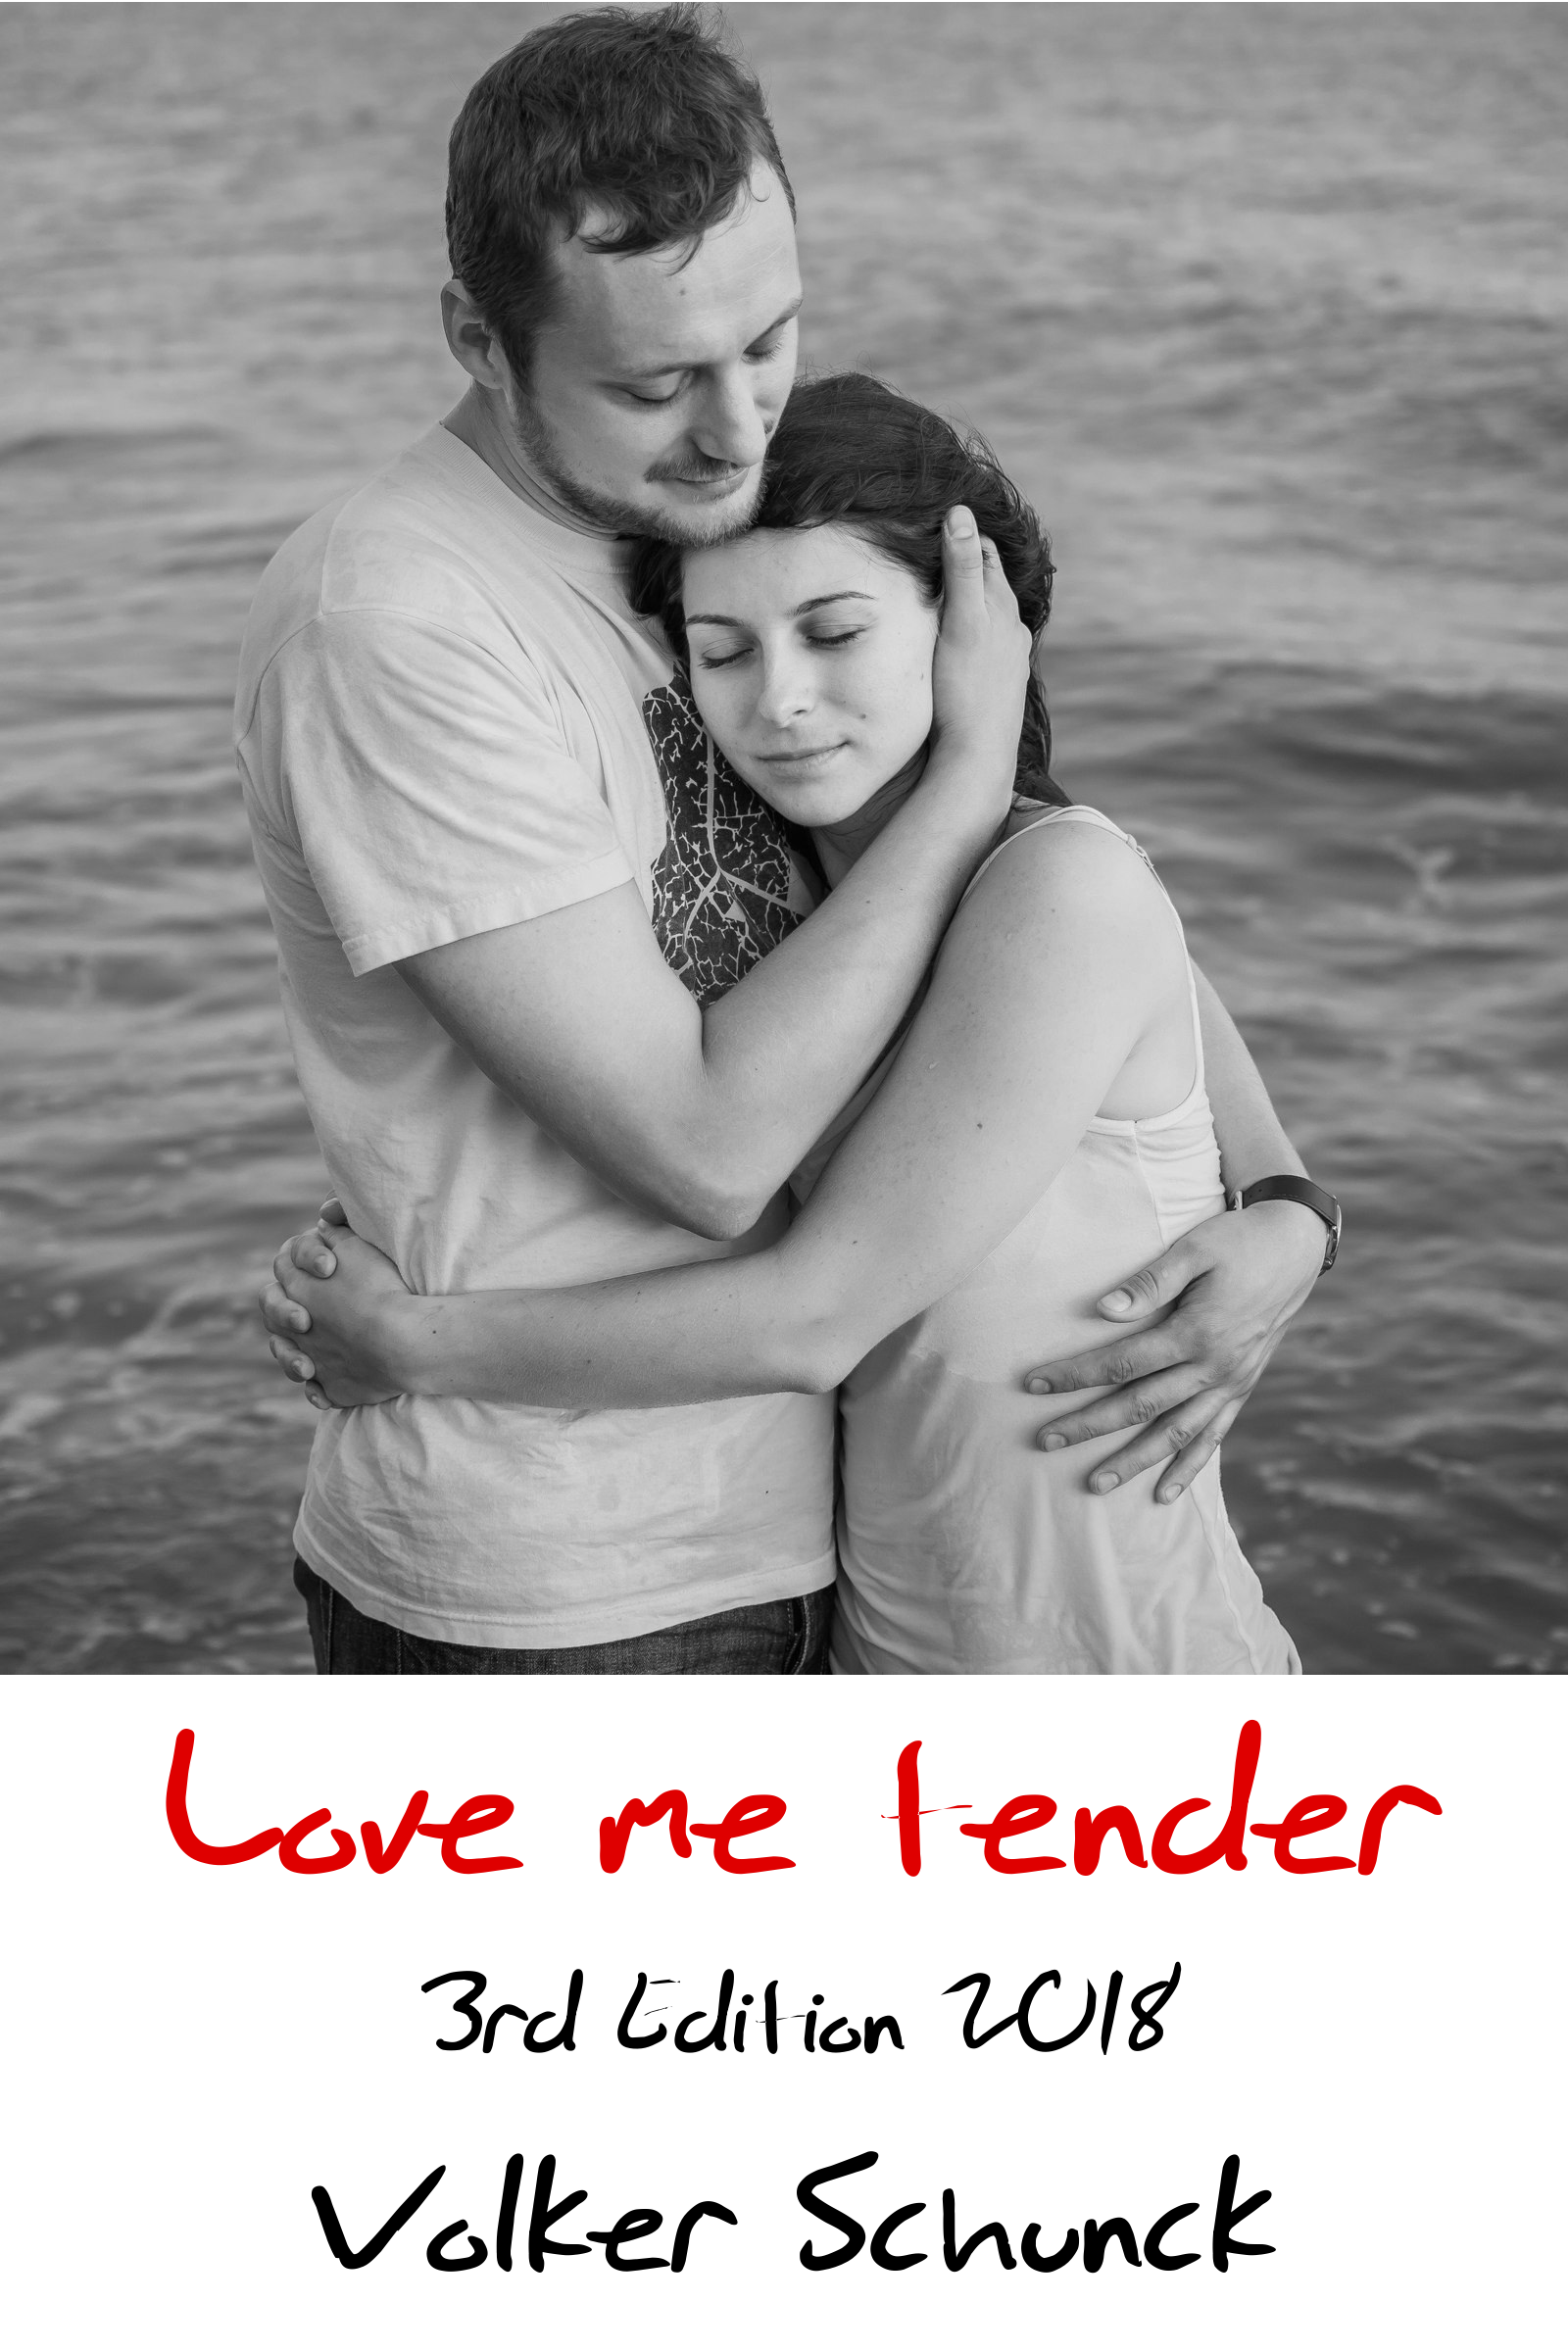 Love me tender dating site